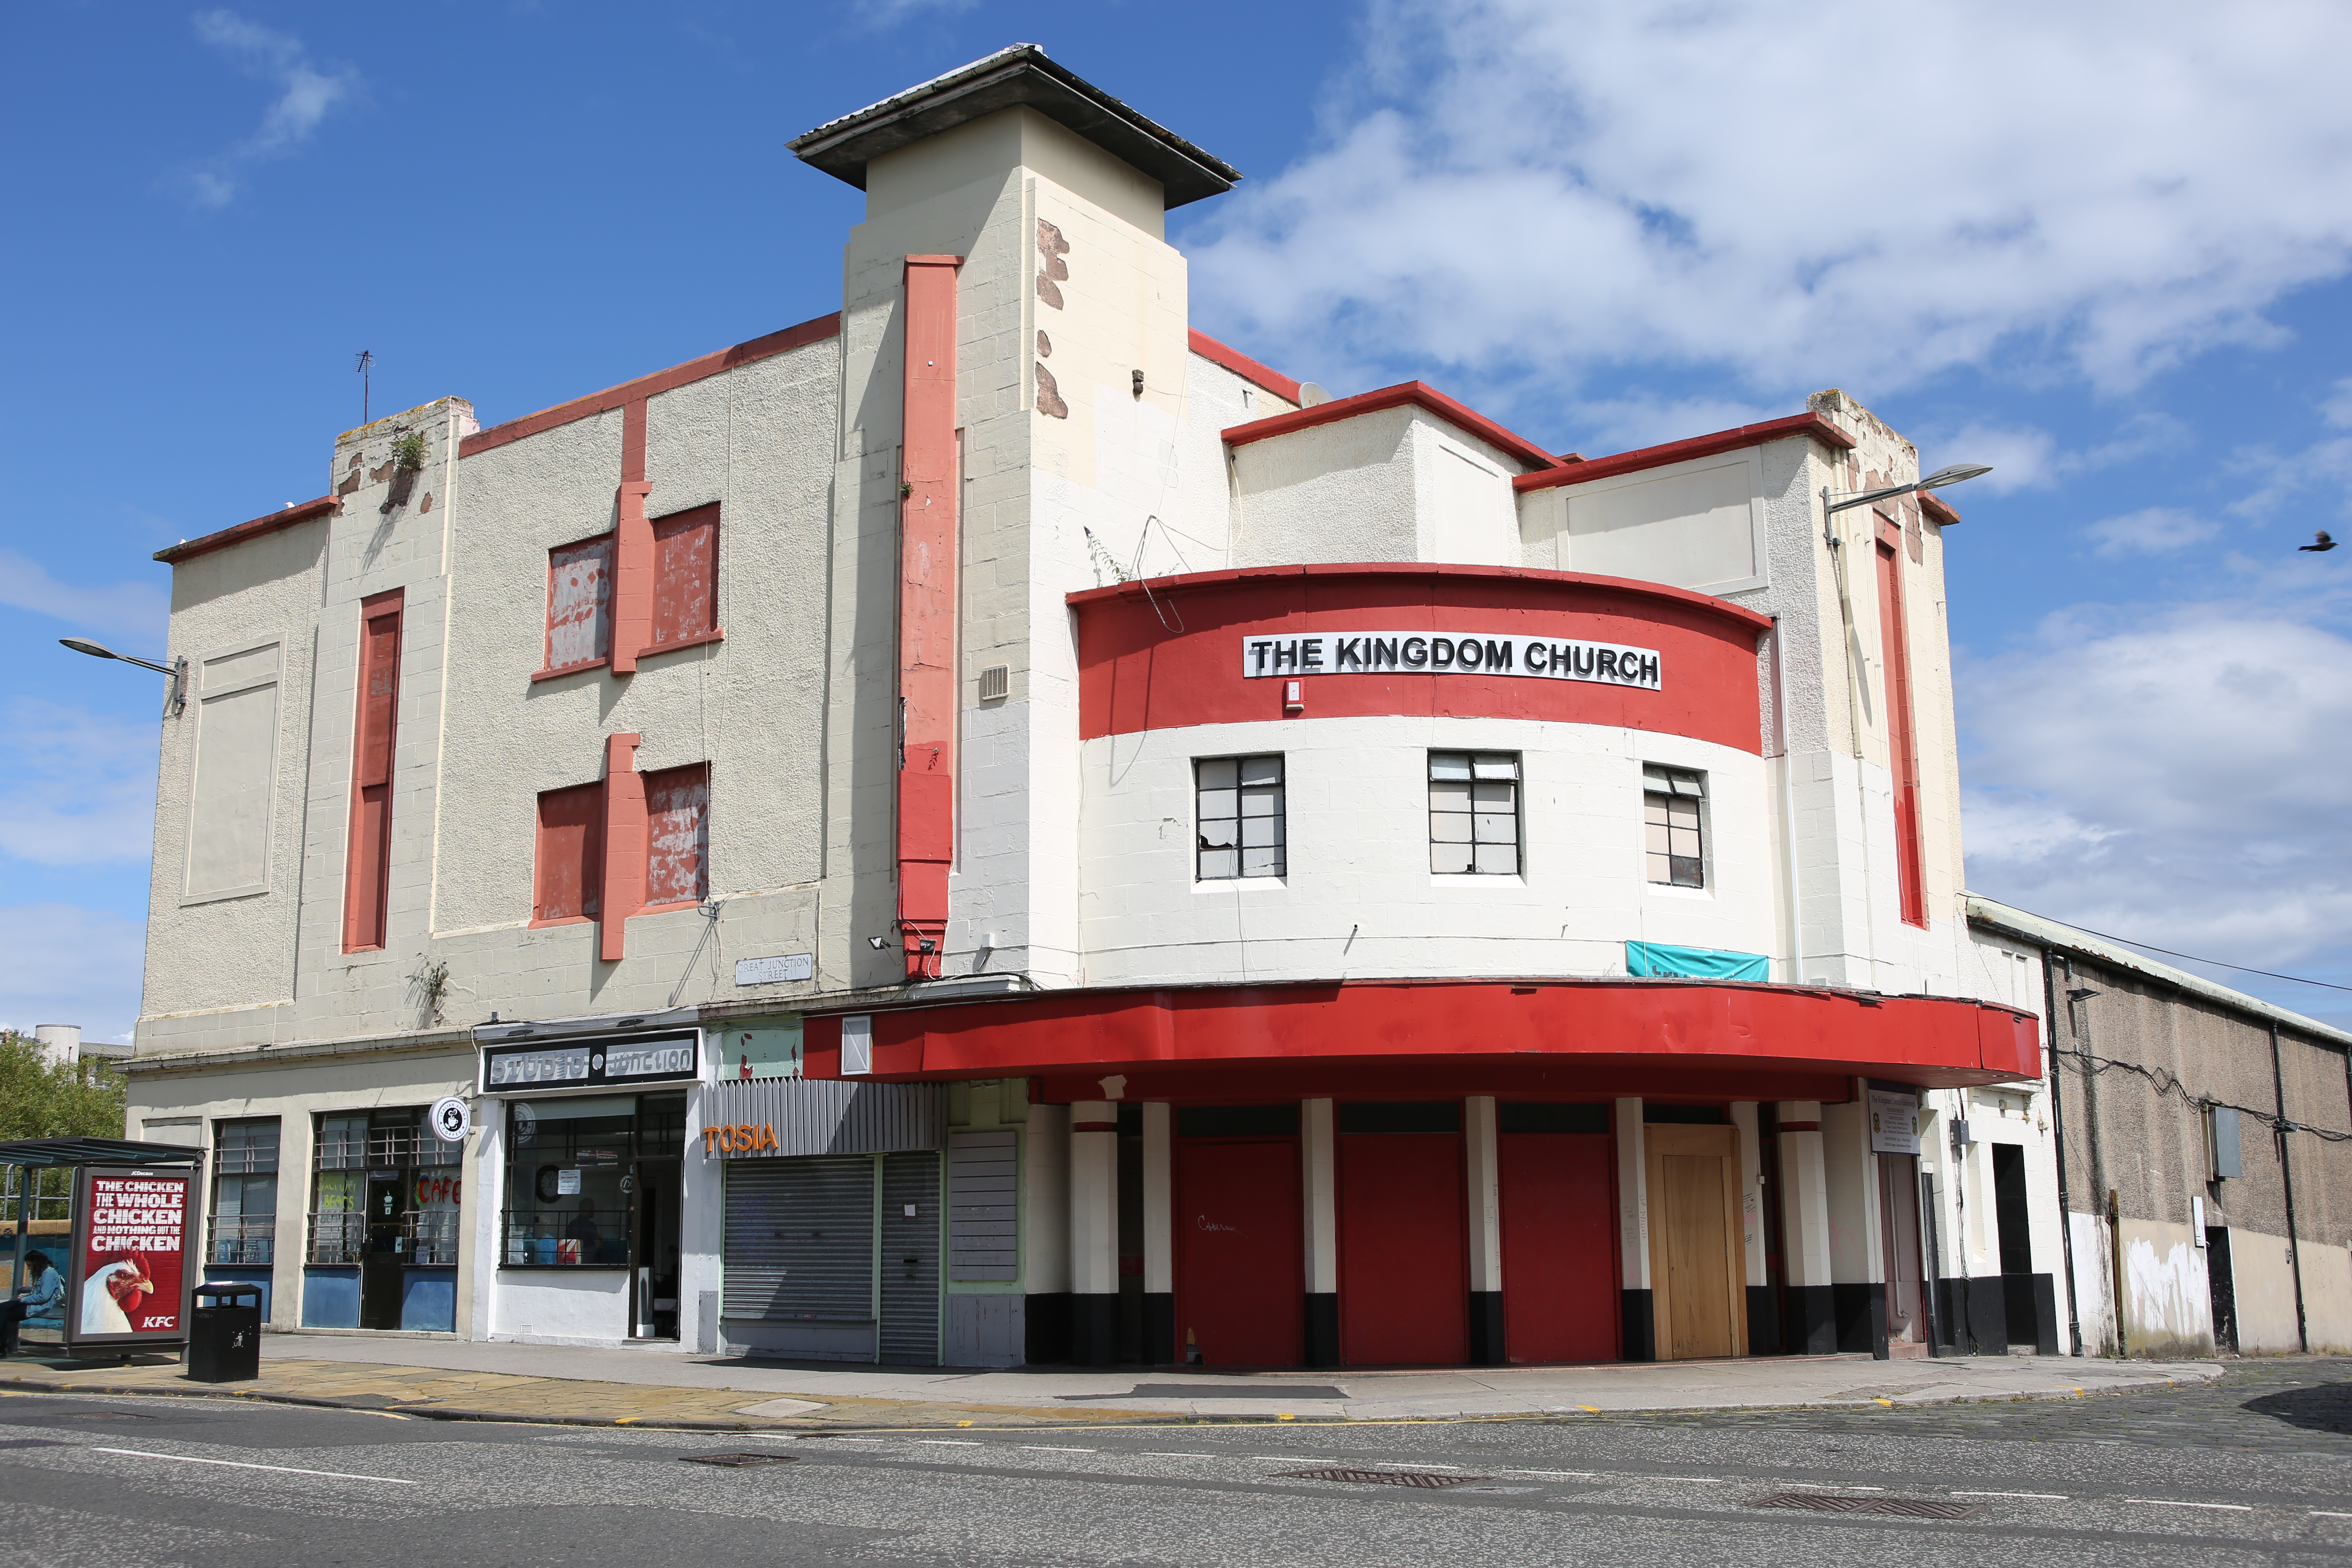 flats plan approved for former art deco cinema daily business